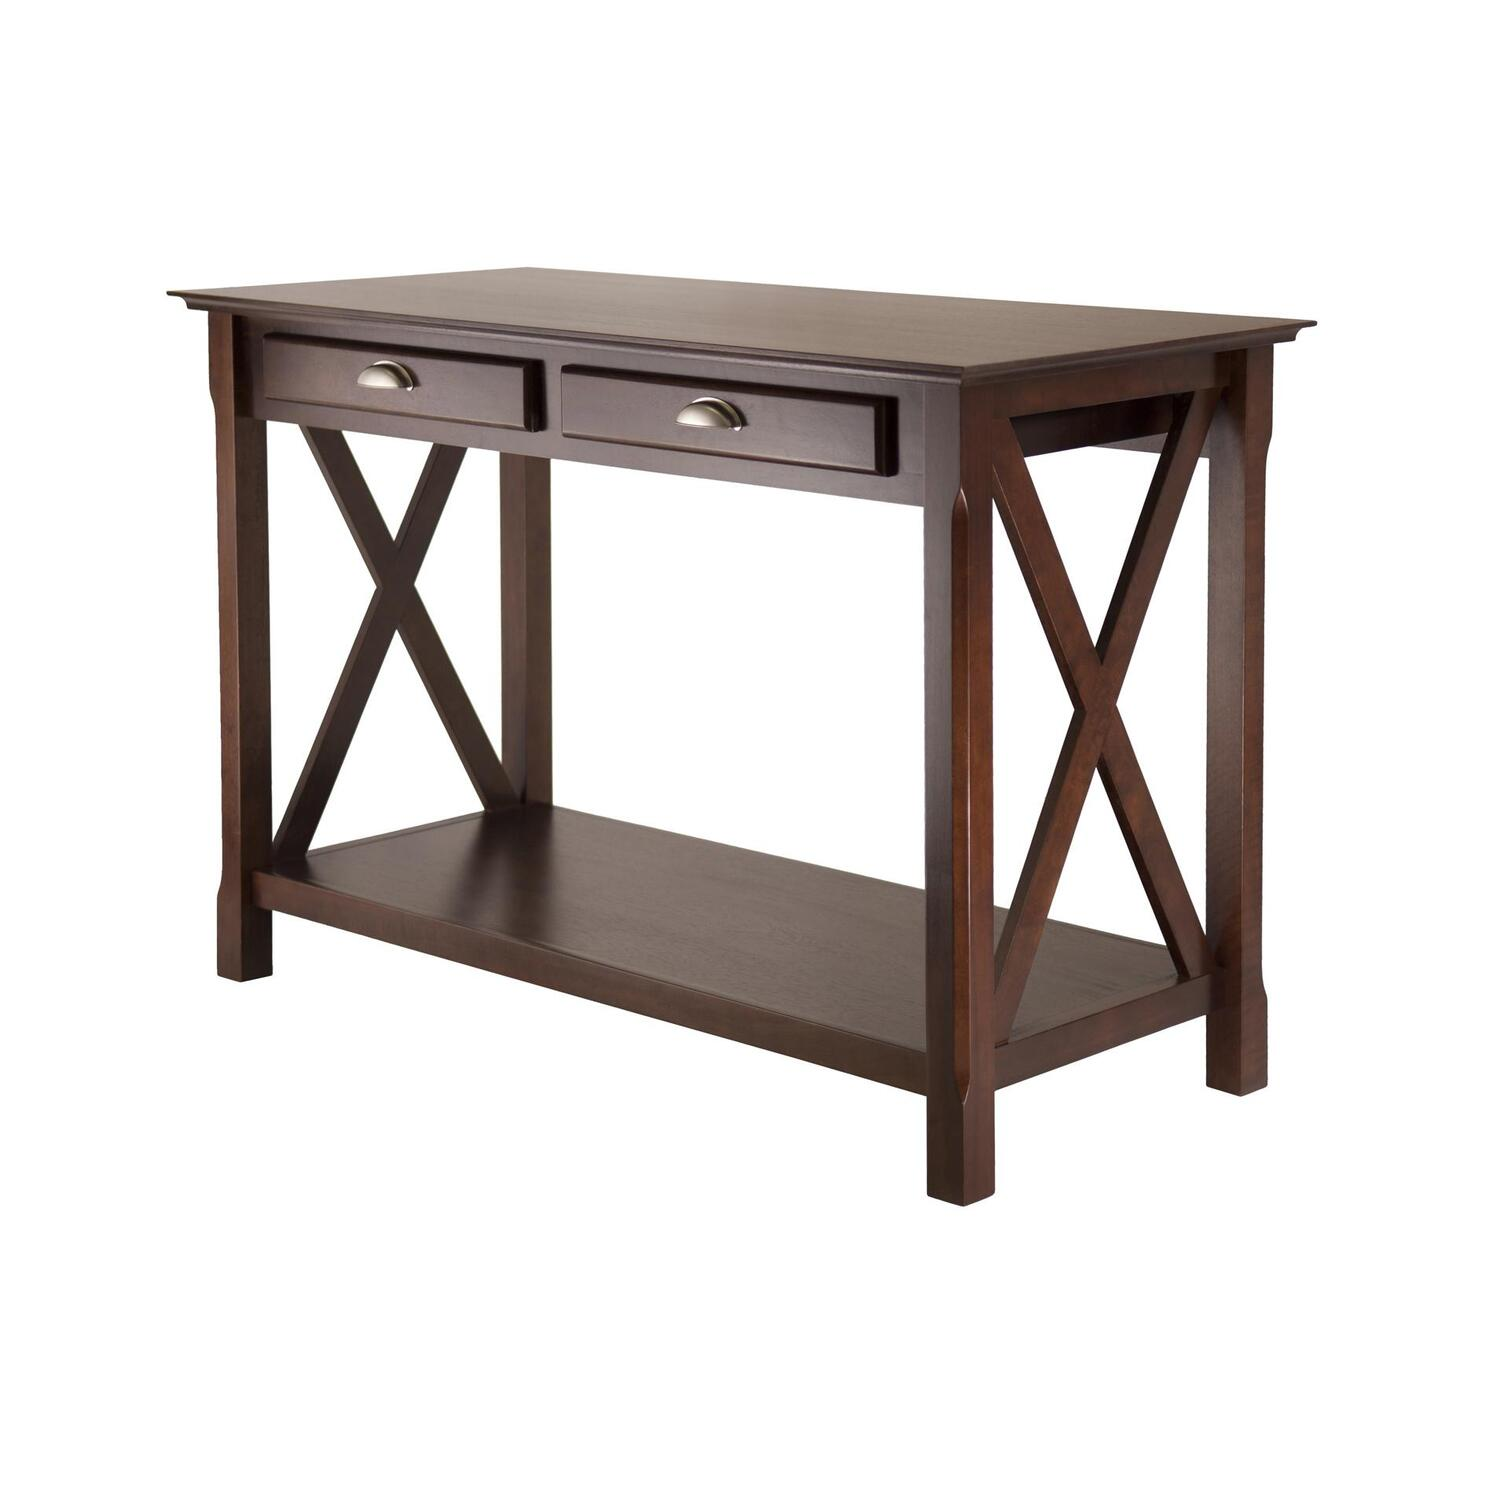 Winsome Wood Xola Console Table with 2 Drawers